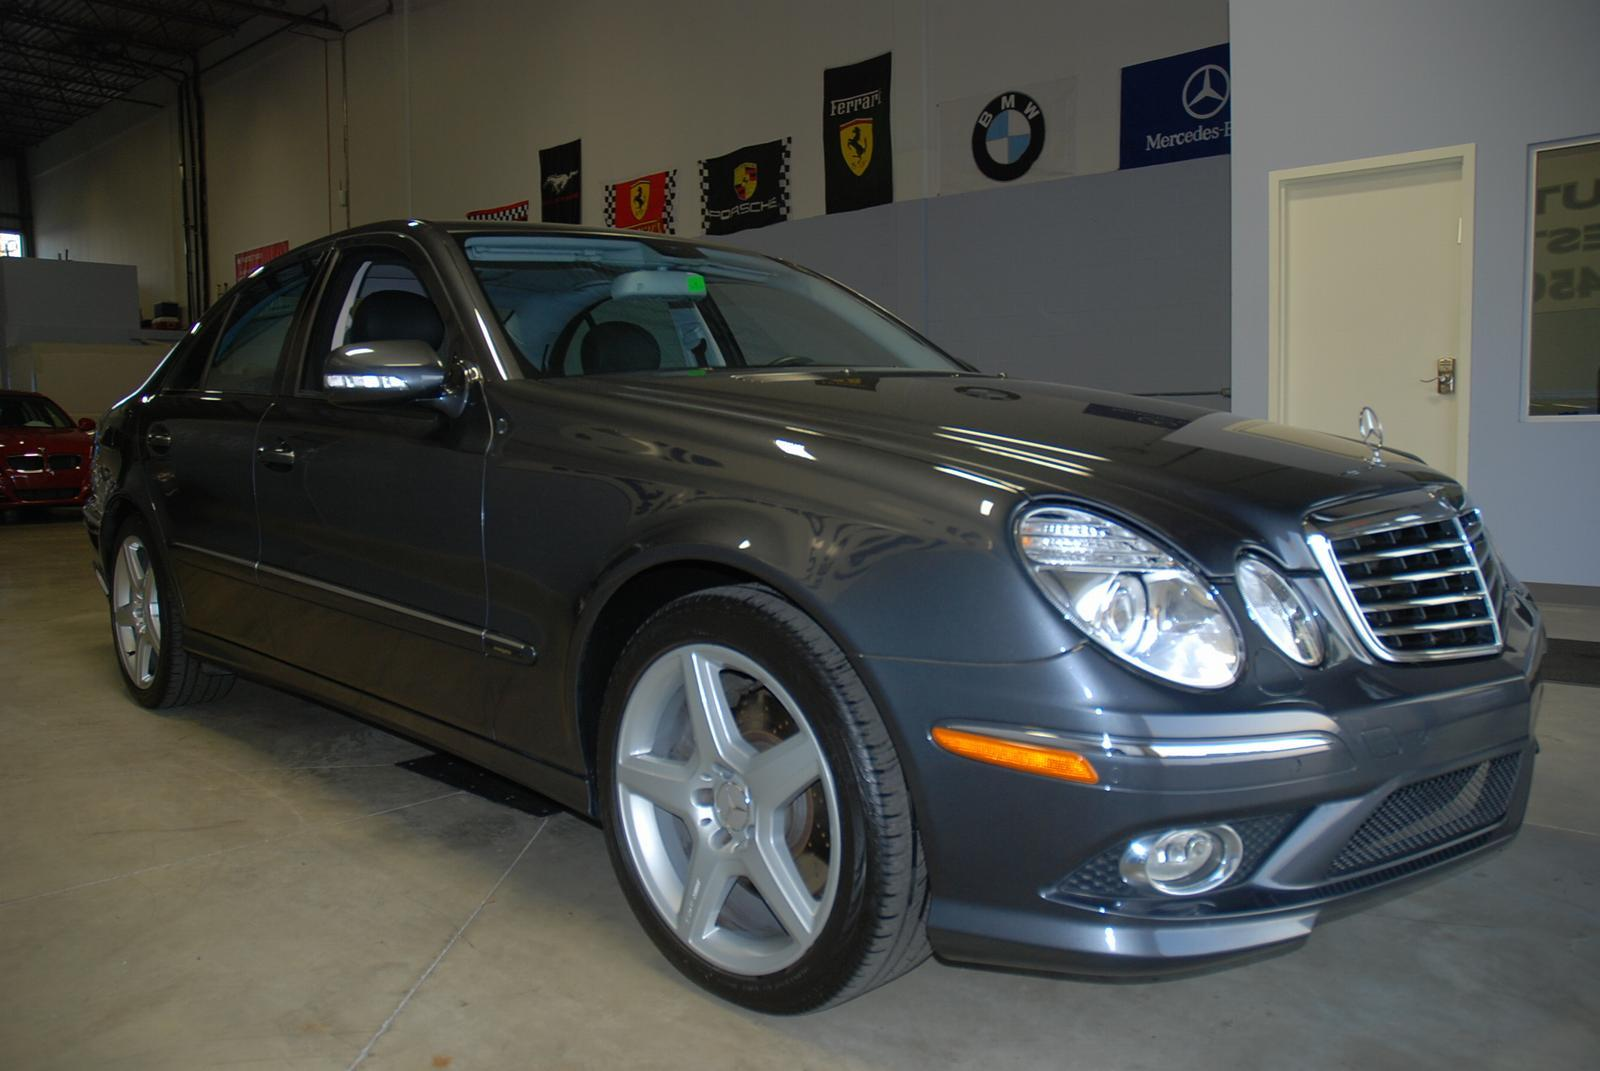 Used 2009 mercedes benz e350 4matic for sale in saint john nb for 2009 mercedes benz e350 4matic